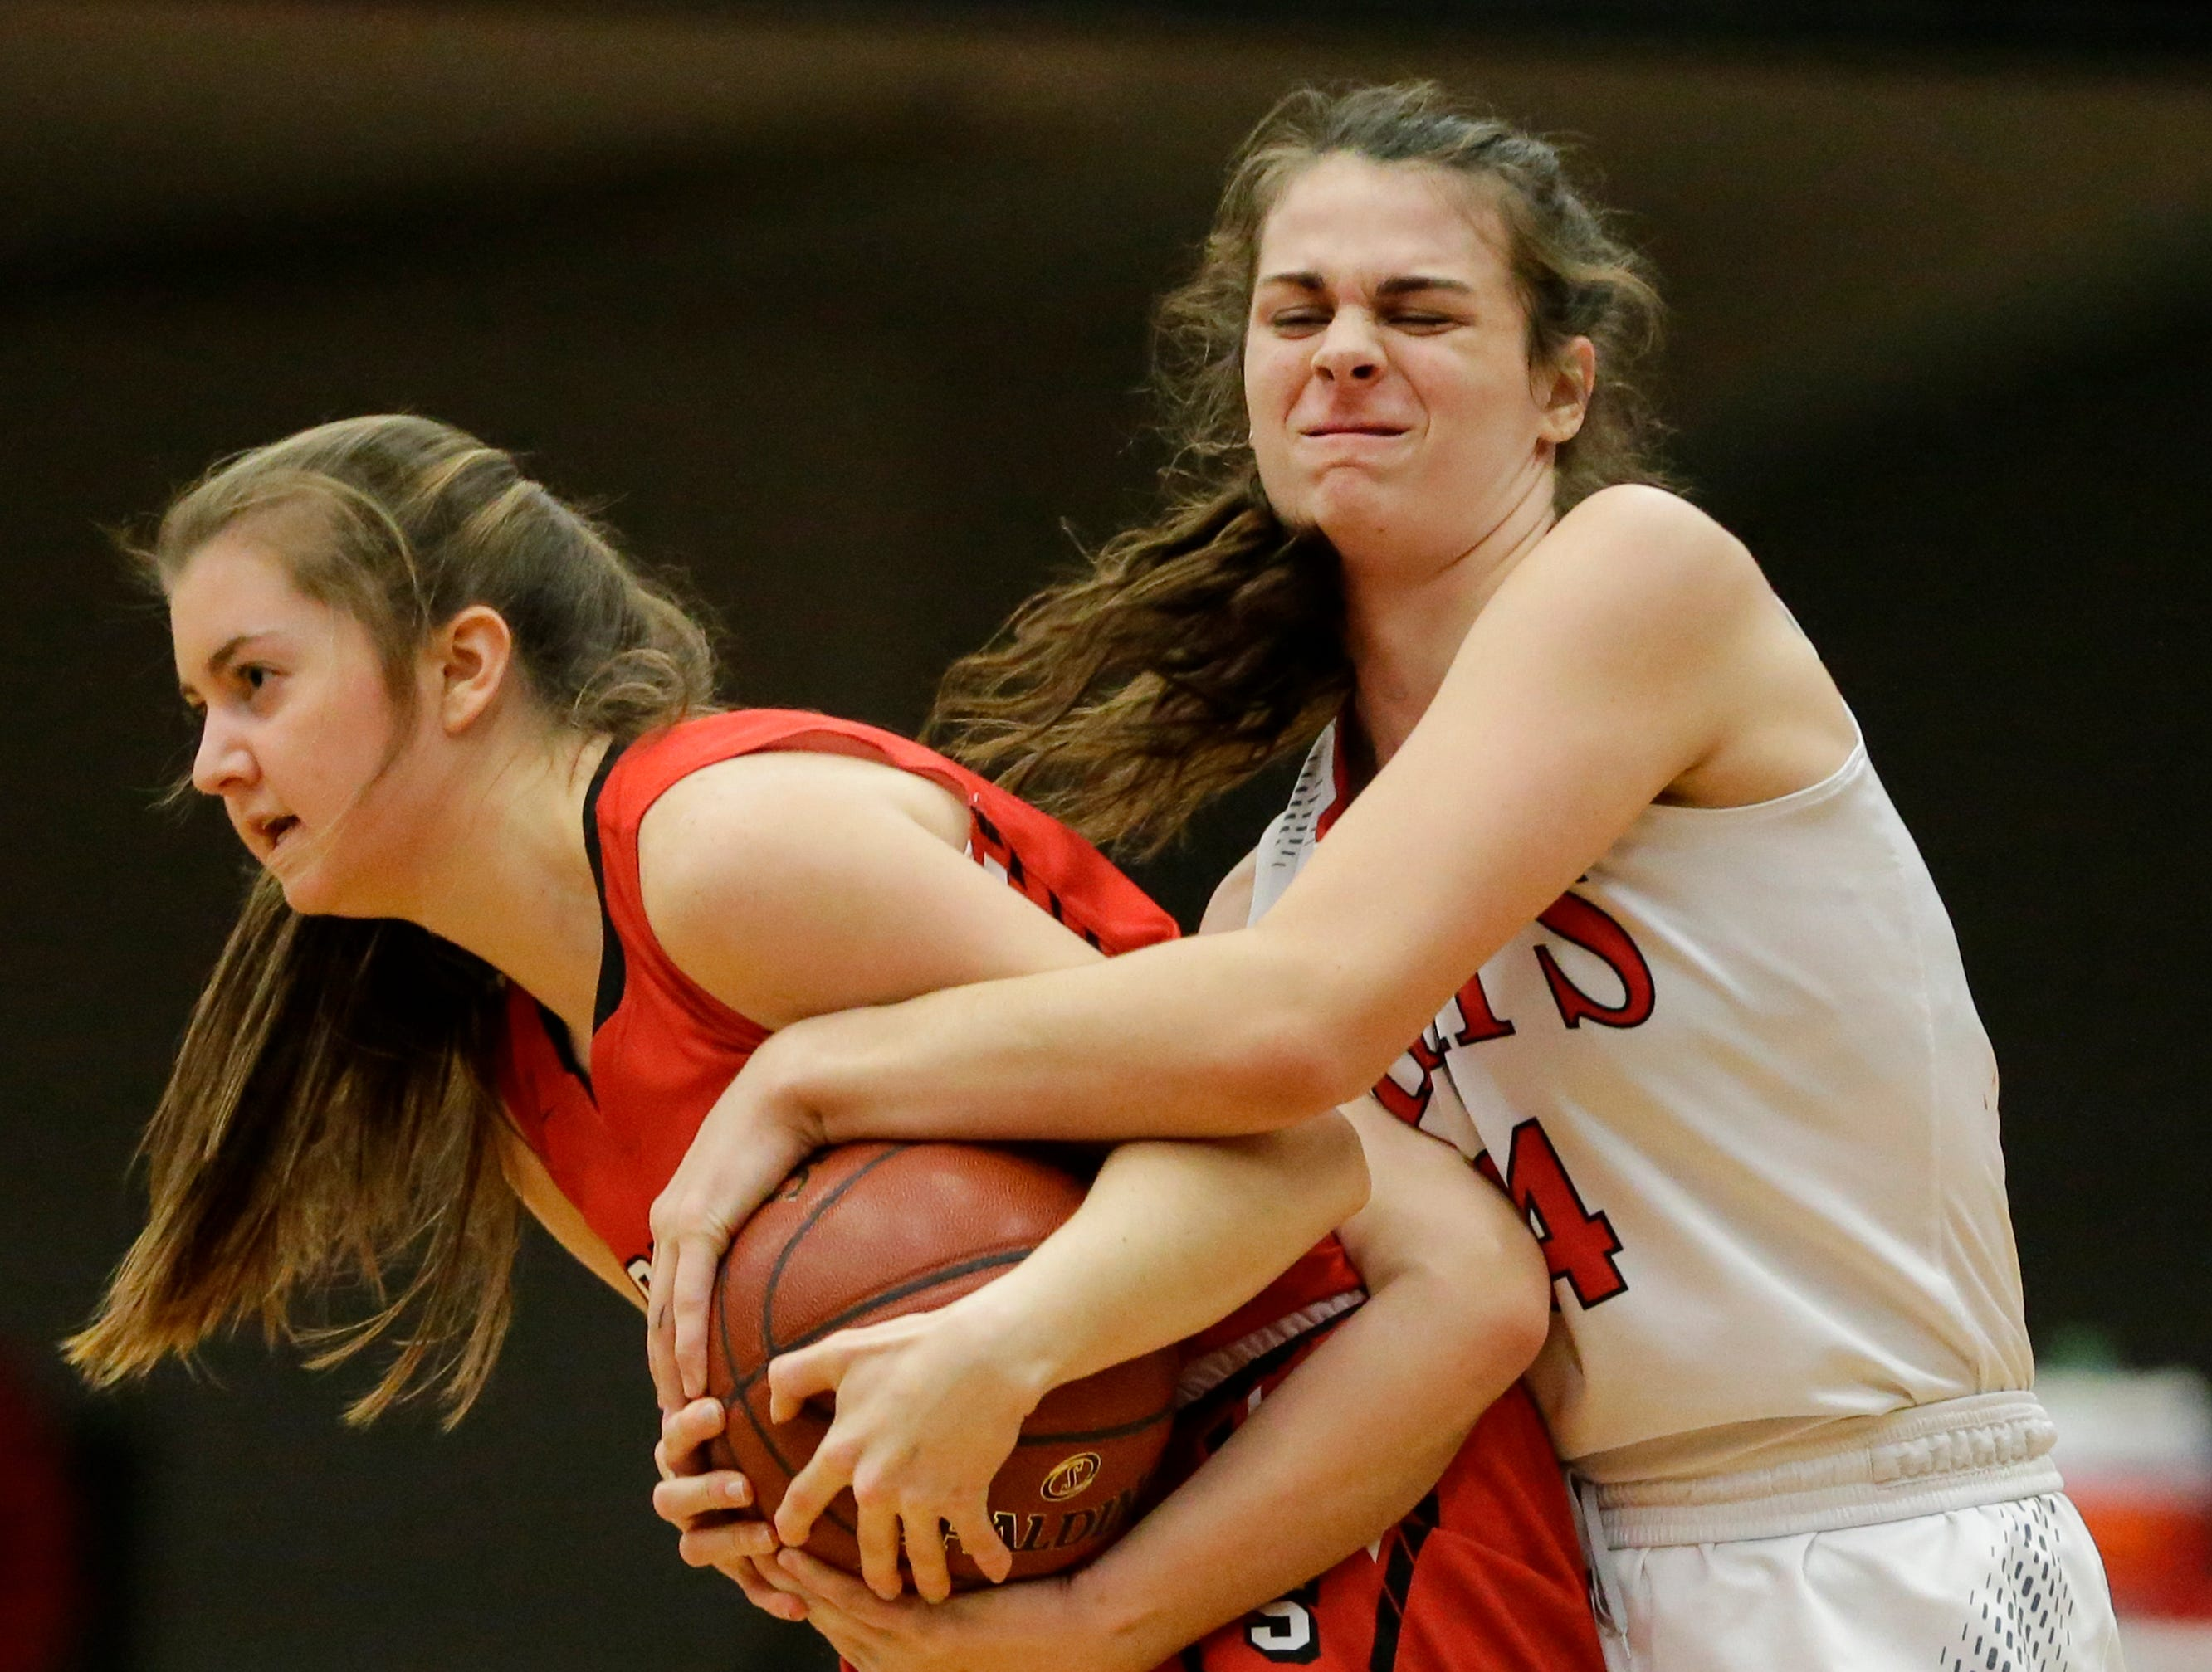 Manitowoc Lincoln's Claire Swoboda (14) gets tangled up with Sheboygan South's Abby Urben (22) for a jump ball during an FRCC matchup at Manitowoc Lincoln High School Friday, January 4, 2019, in Manitowoc, Wis. Joshua Clark/USA TODAY NETWORK-Wisconsin